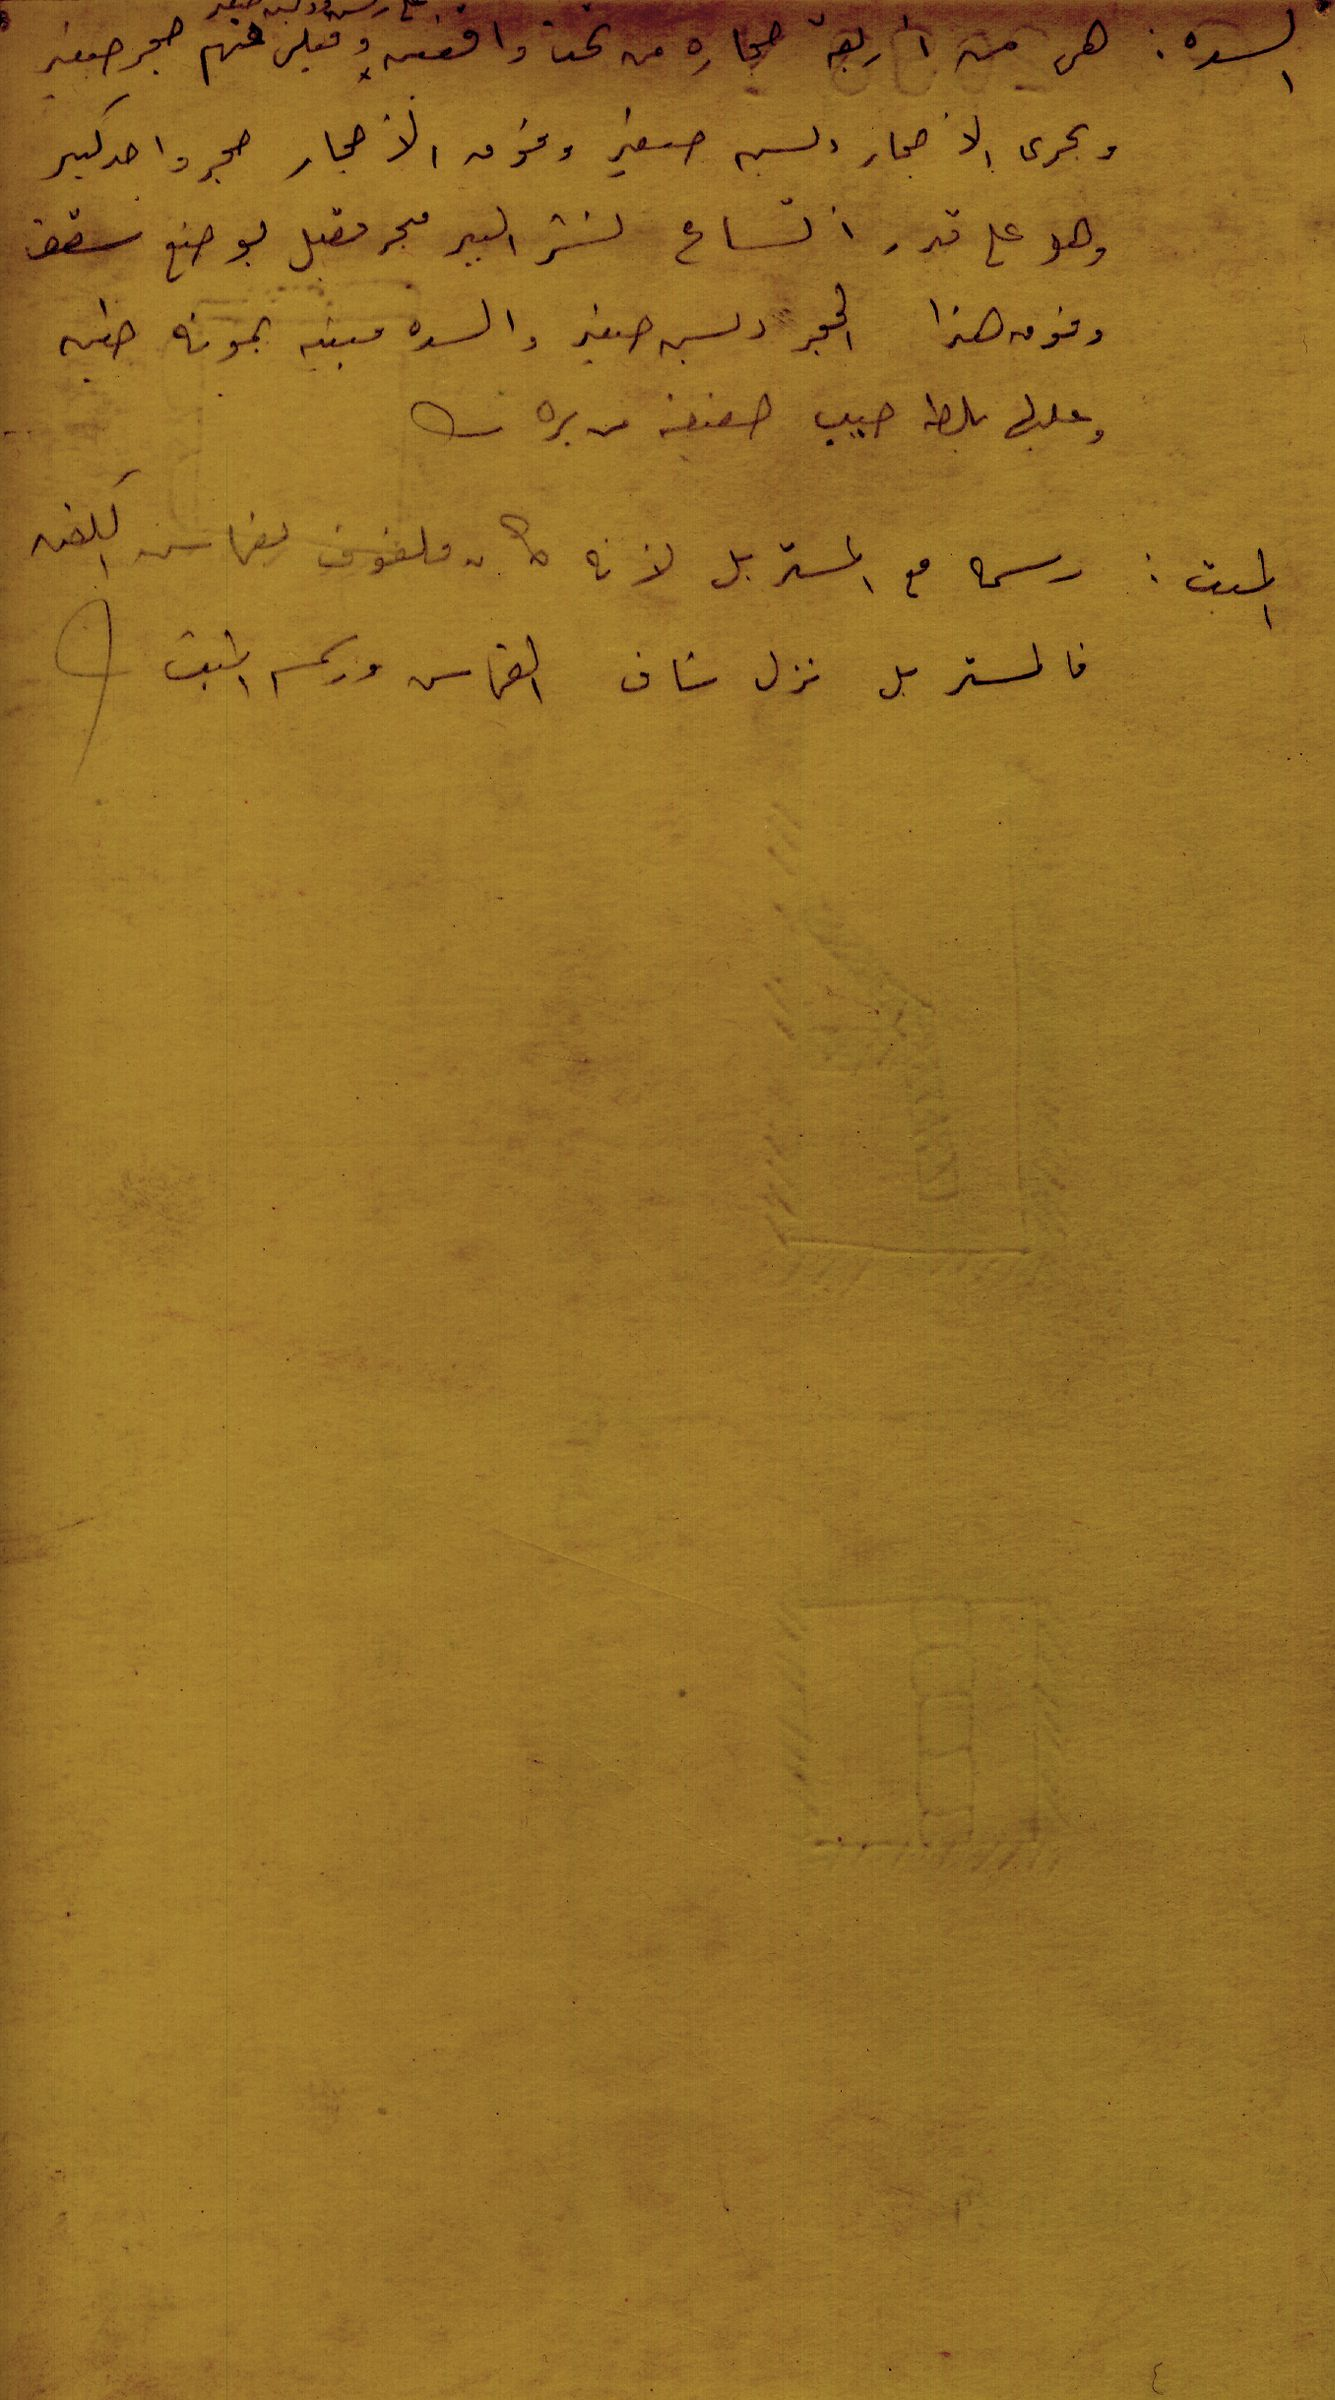 Notes: G 2098, Shaft Y, notes (in Arabic)